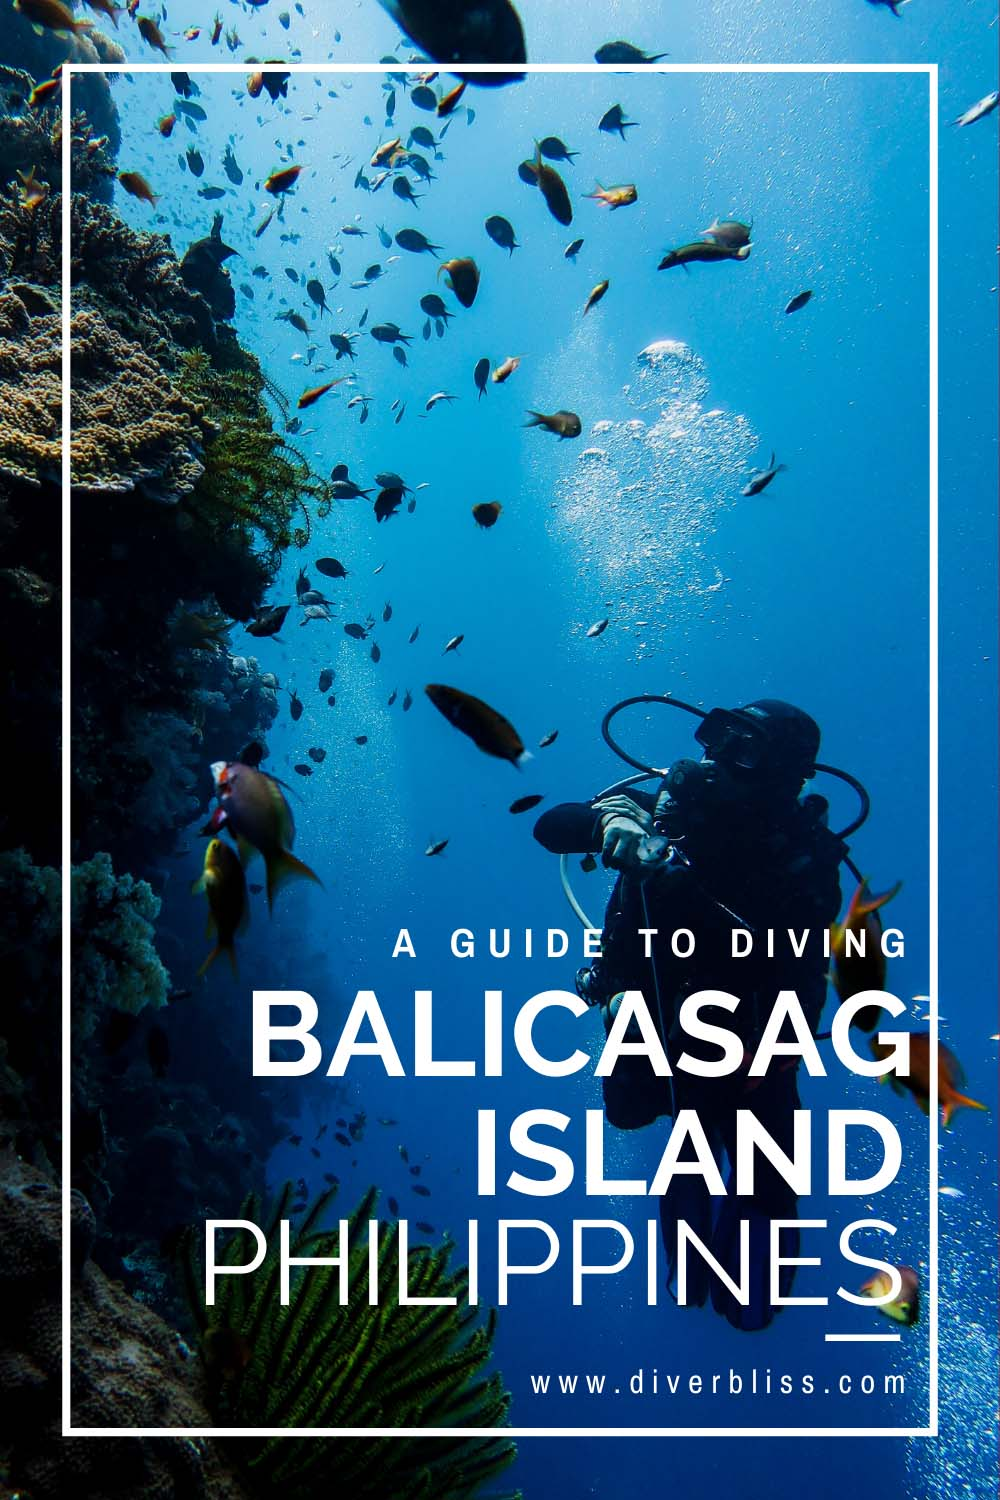 A Guide to diving in Balicasag Island, Bohol Philippines